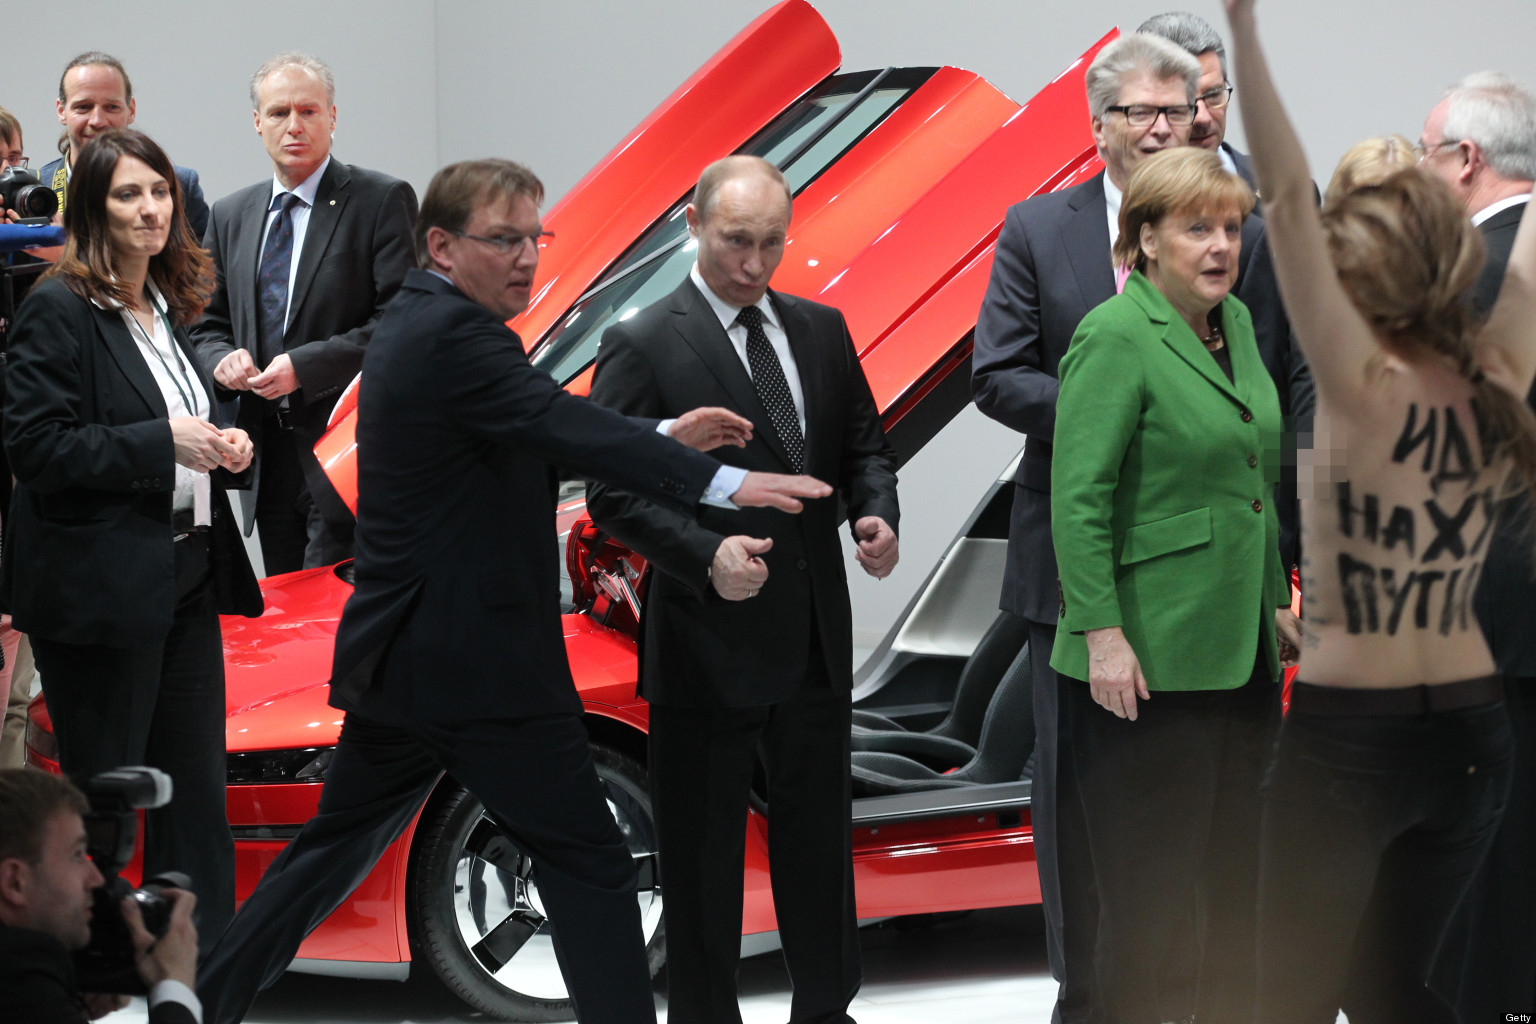 Putin Topless Protest: Russian President's Germany Visit ...